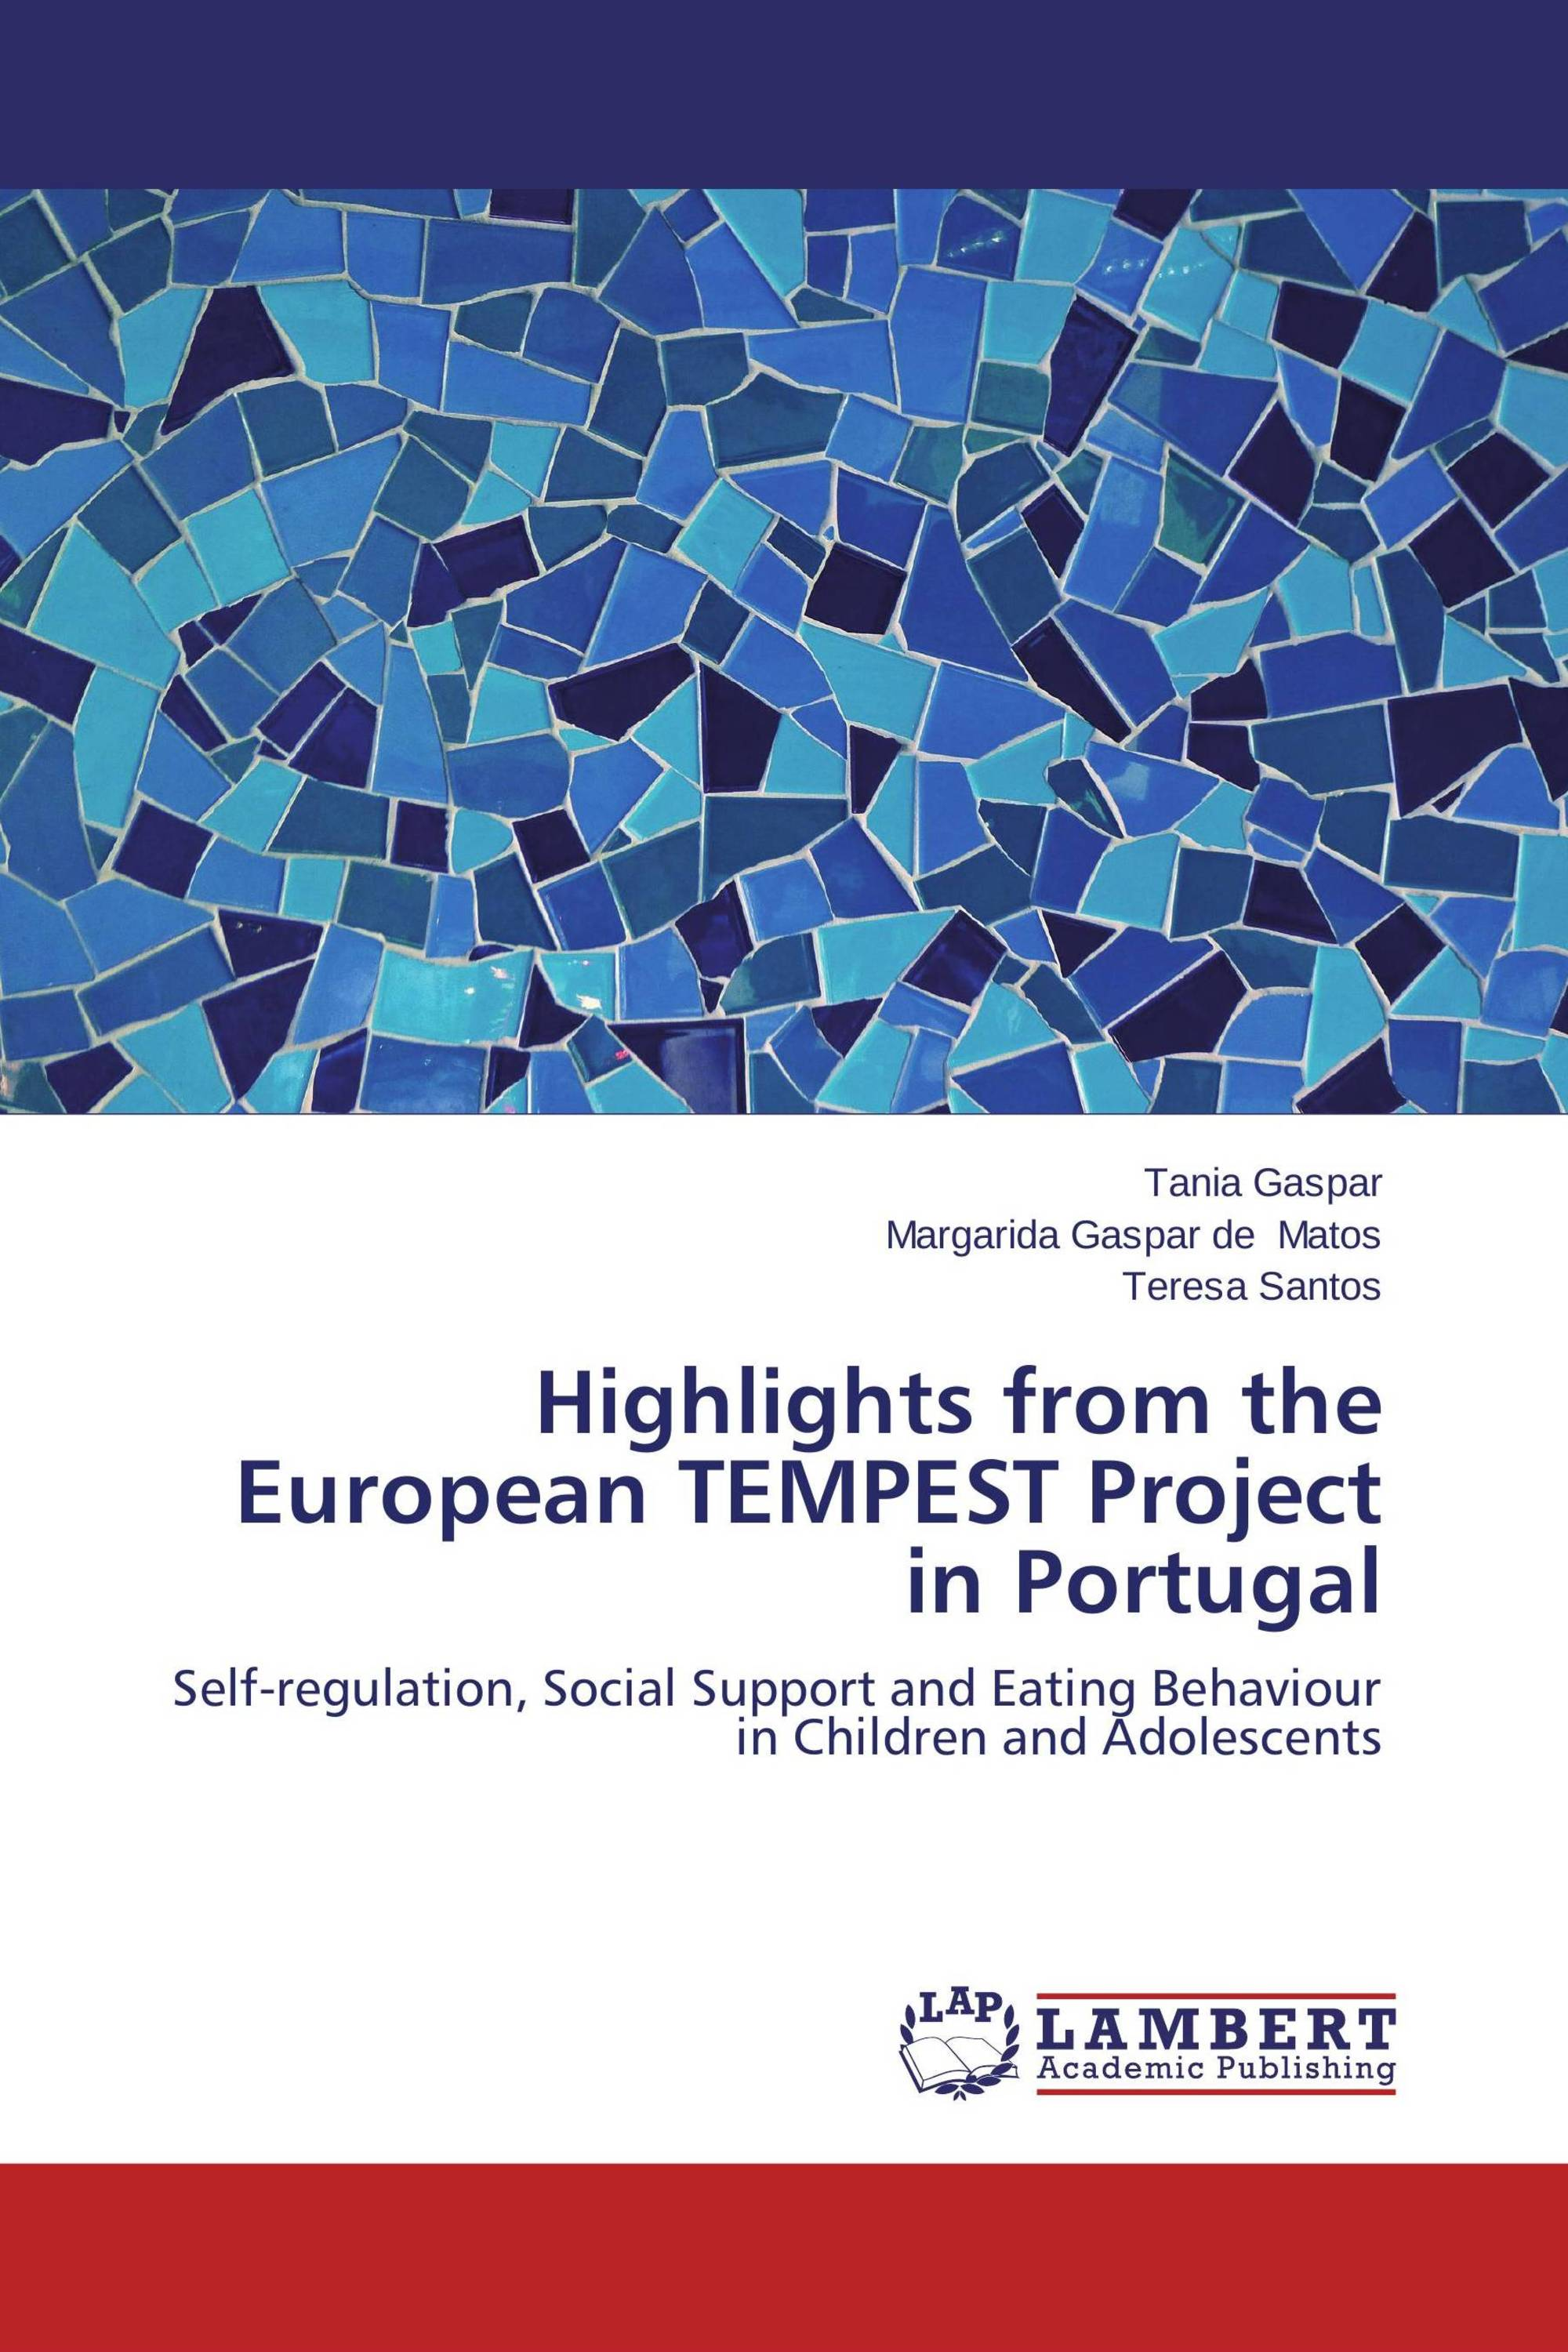 Highlights from the European TEMPEST Project in Portugal